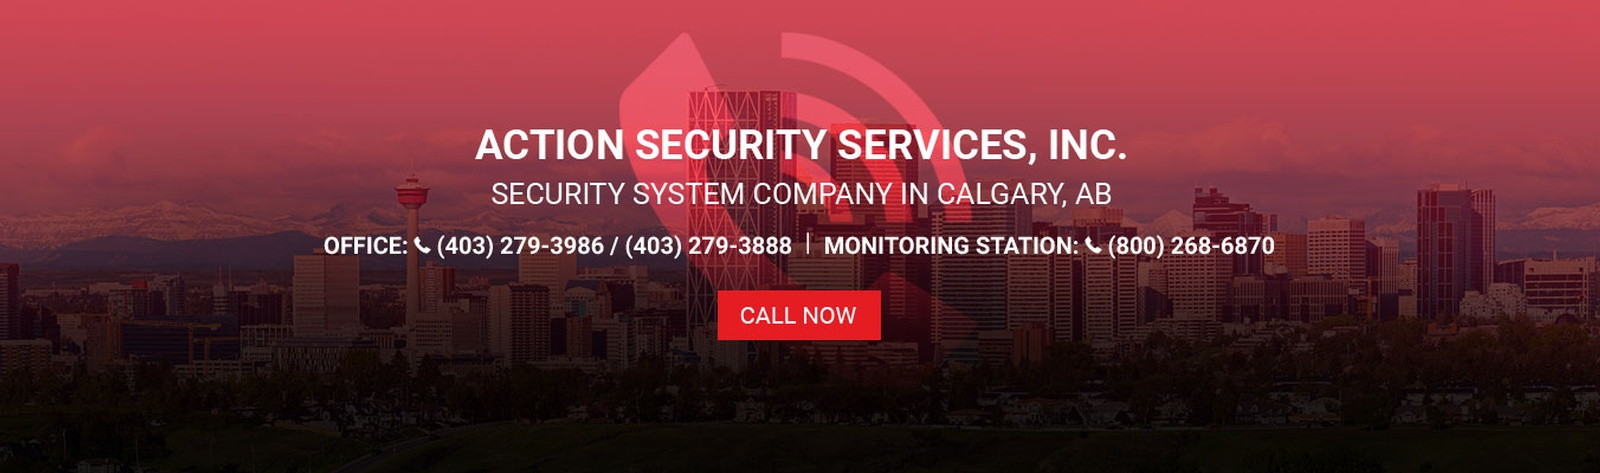 Security System Company Calgary